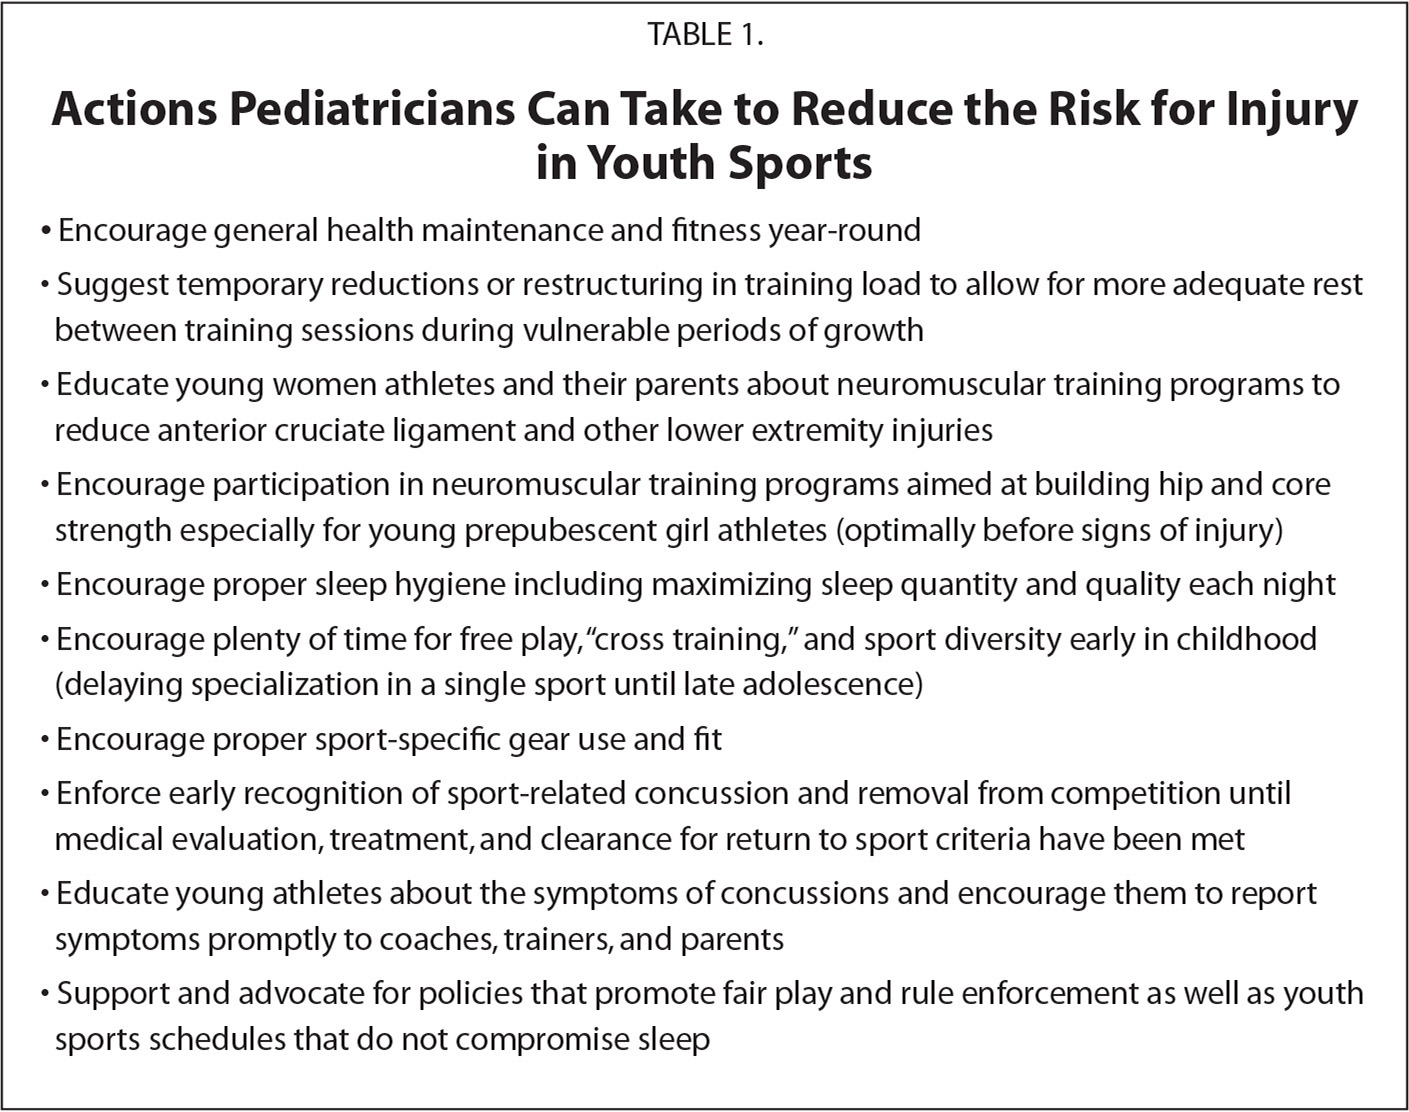 Actions Pediatricians Can Take to Reduce the Risk for Injury in Youth Sports